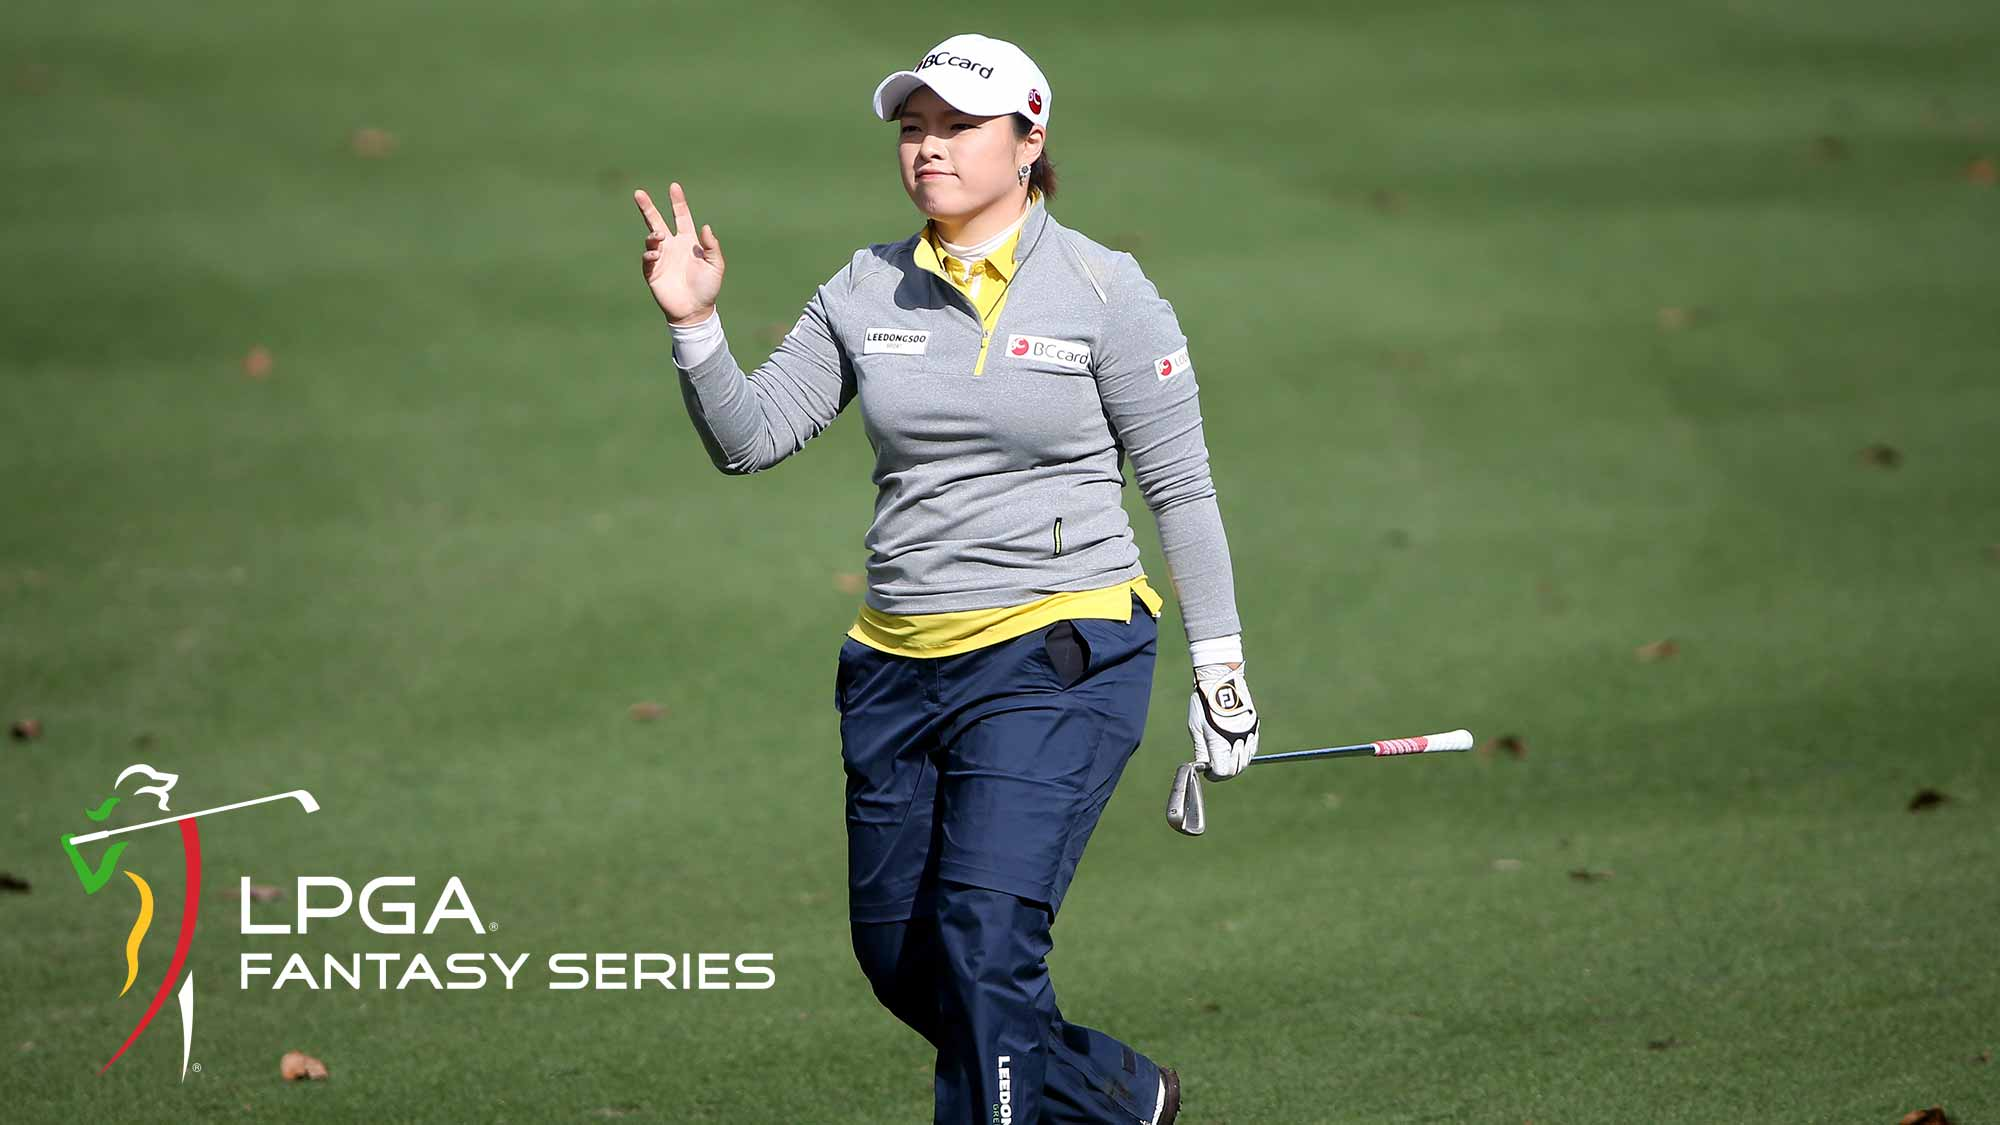 LPGA Fantasy Series - Top 10 To Watch At ISPS Handa Women ...